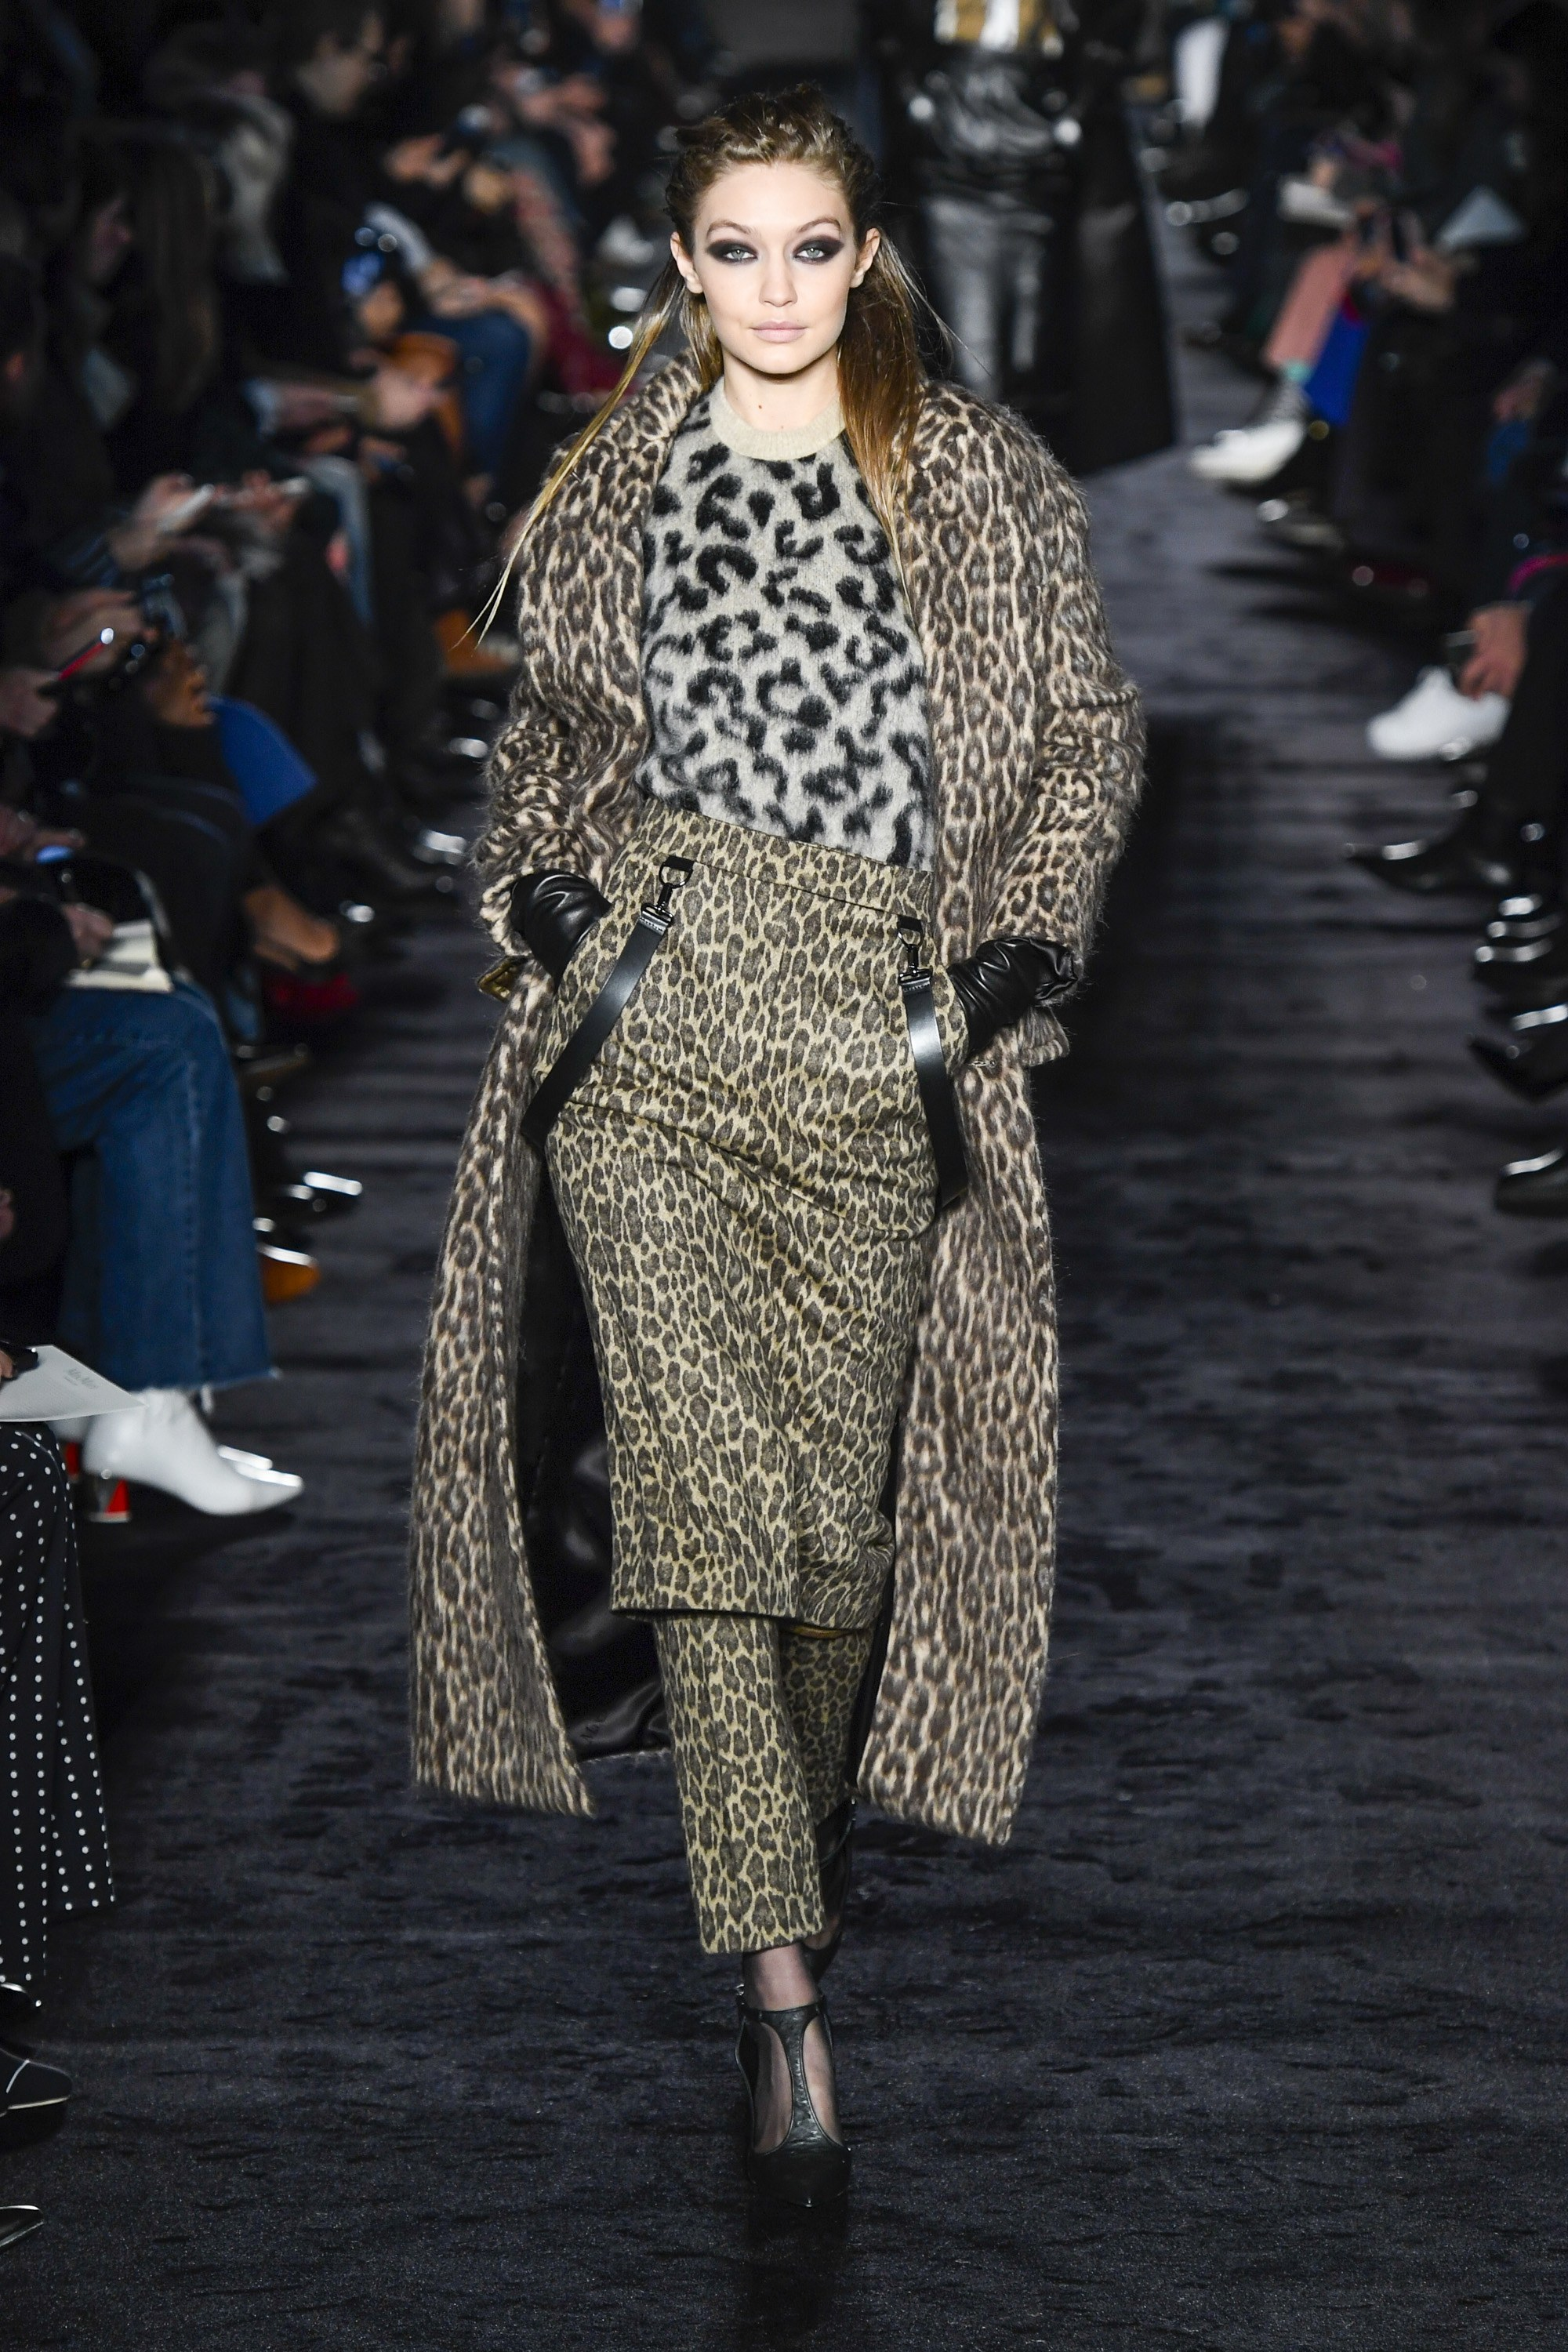 Max Mara Ready-to-Wear Fall 2018  - Maximalism is alive and well for yet another season! Styling pants under the skirt totally works for me